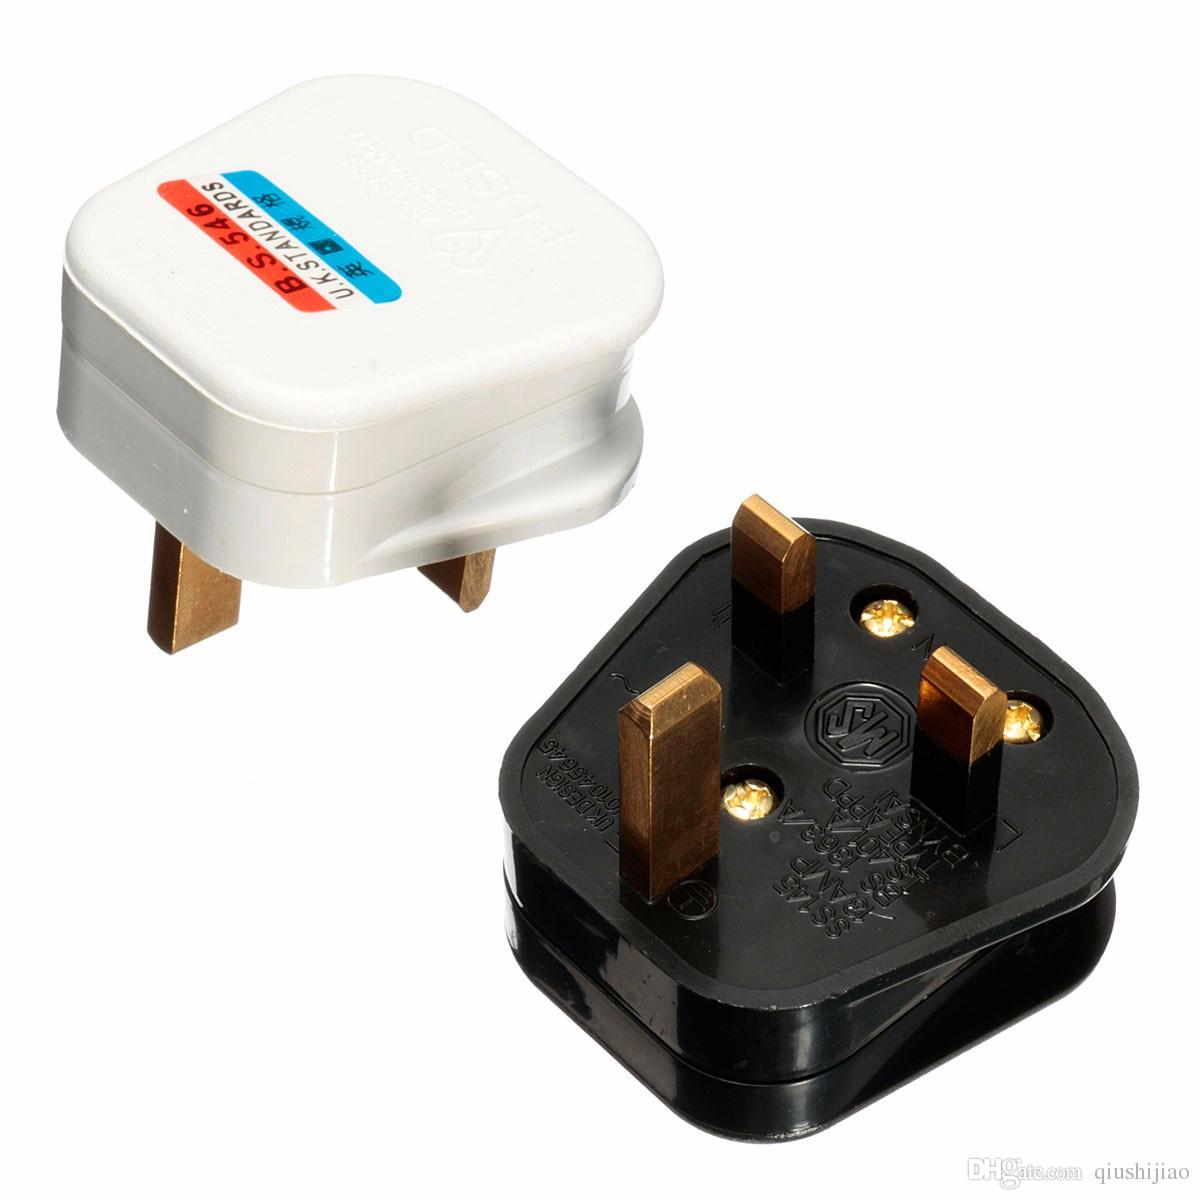 13A UK Electrical Plug 3Pin Socket UK Plug Connector Cord Adapter 13 AMP Mains Top Appliance Power Socket Fuse Adapter Household